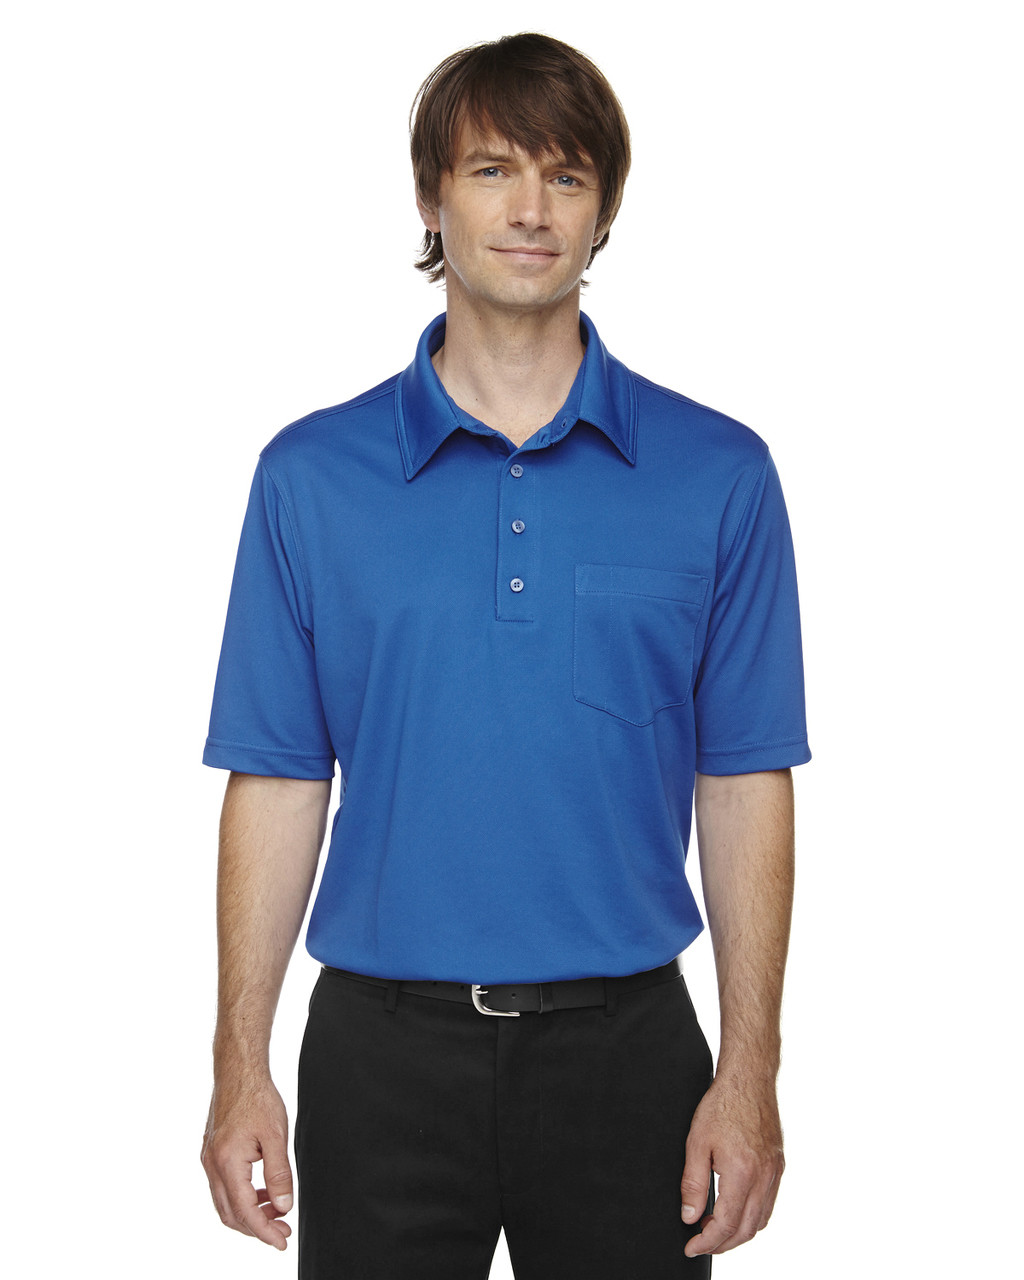 True Royal - 85114 Ash City - Extreme Eperformance Men's Shift Snag Protection Plus Polo Shirt